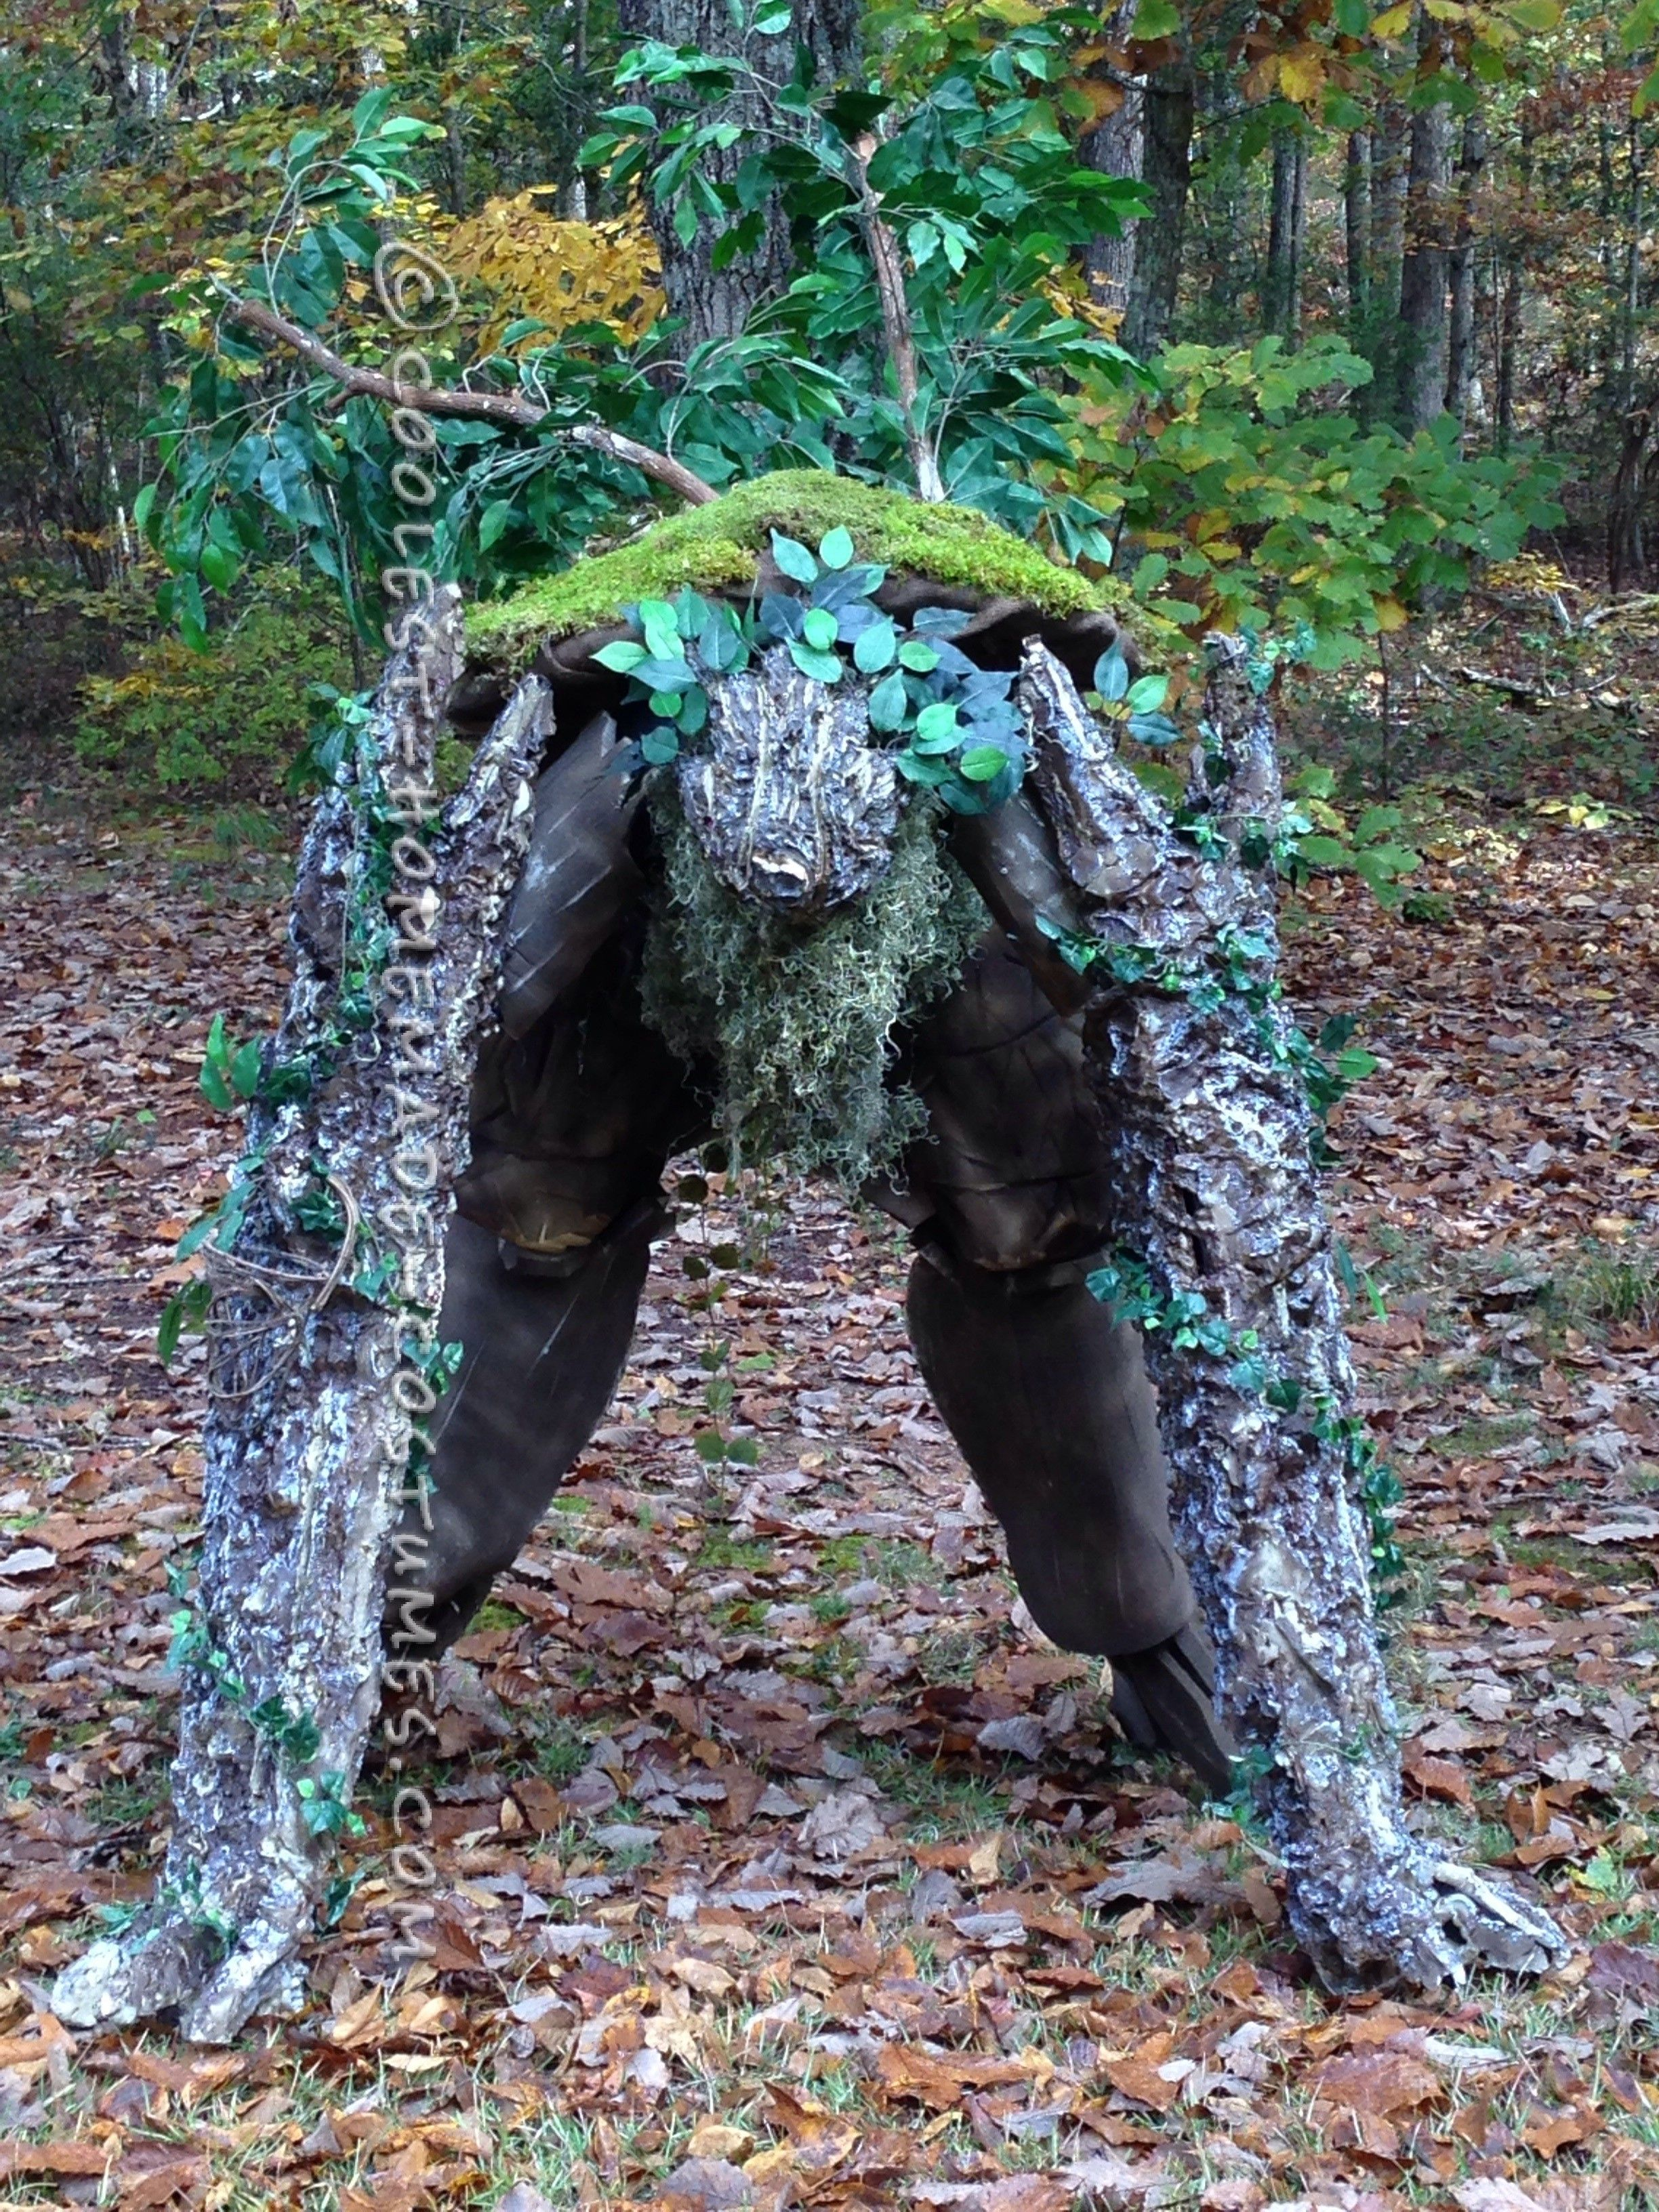 Cool diy lord of the rings tree ent tree monster costume cool diy lord of the rings tree ent tree monster costume solutioingenieria Gallery